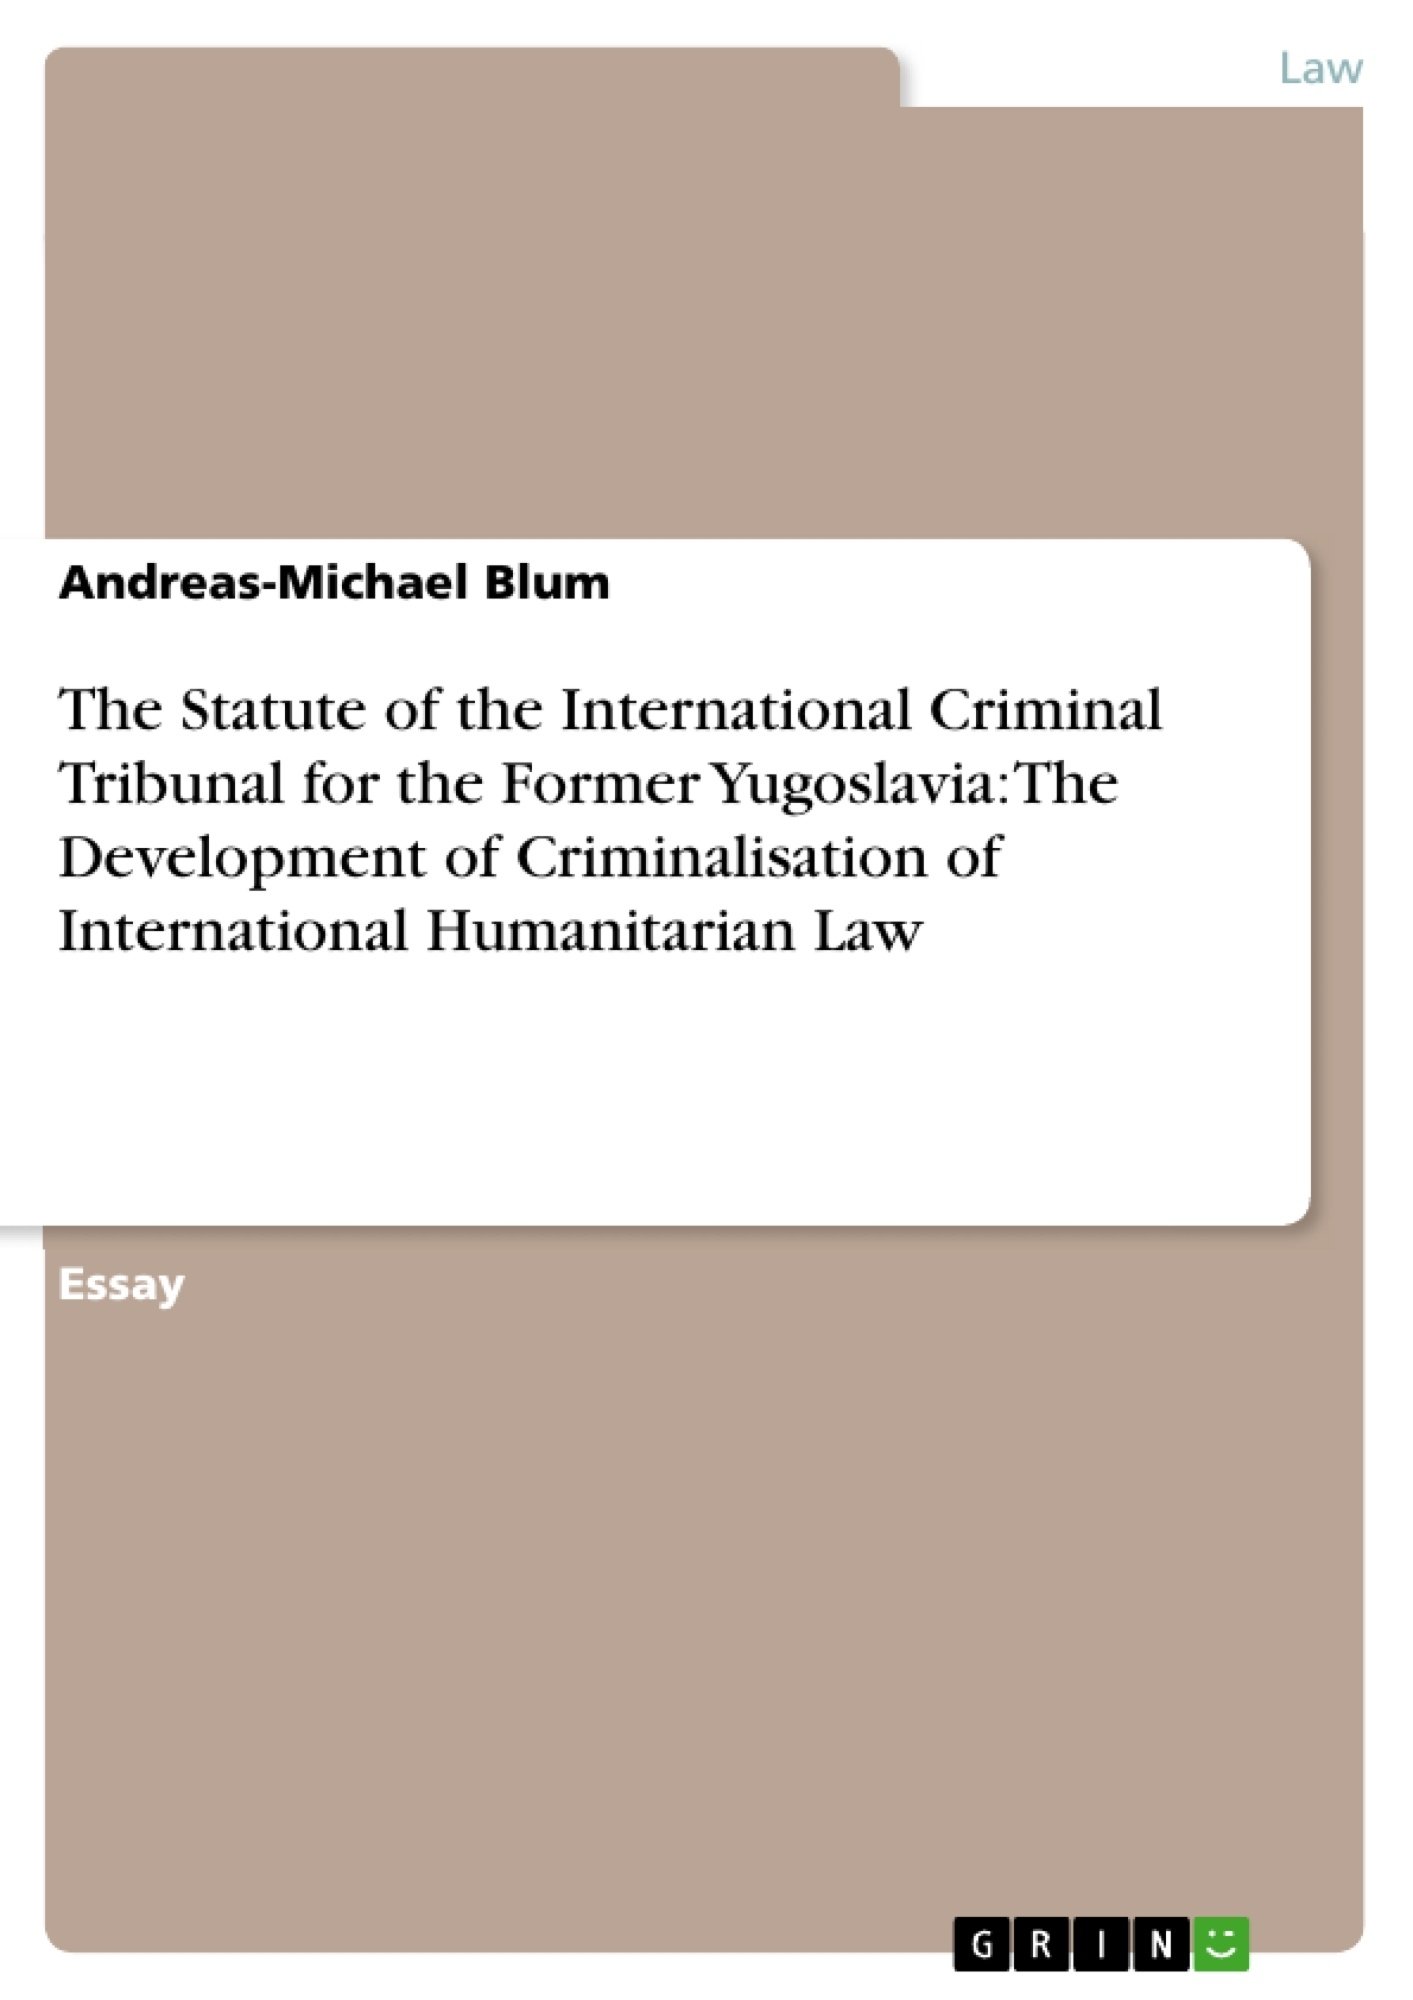 Title: The Statute of the International Criminal Tribunal for the Former Yugoslavia: The Development of Criminalisation of International Humanitarian Law